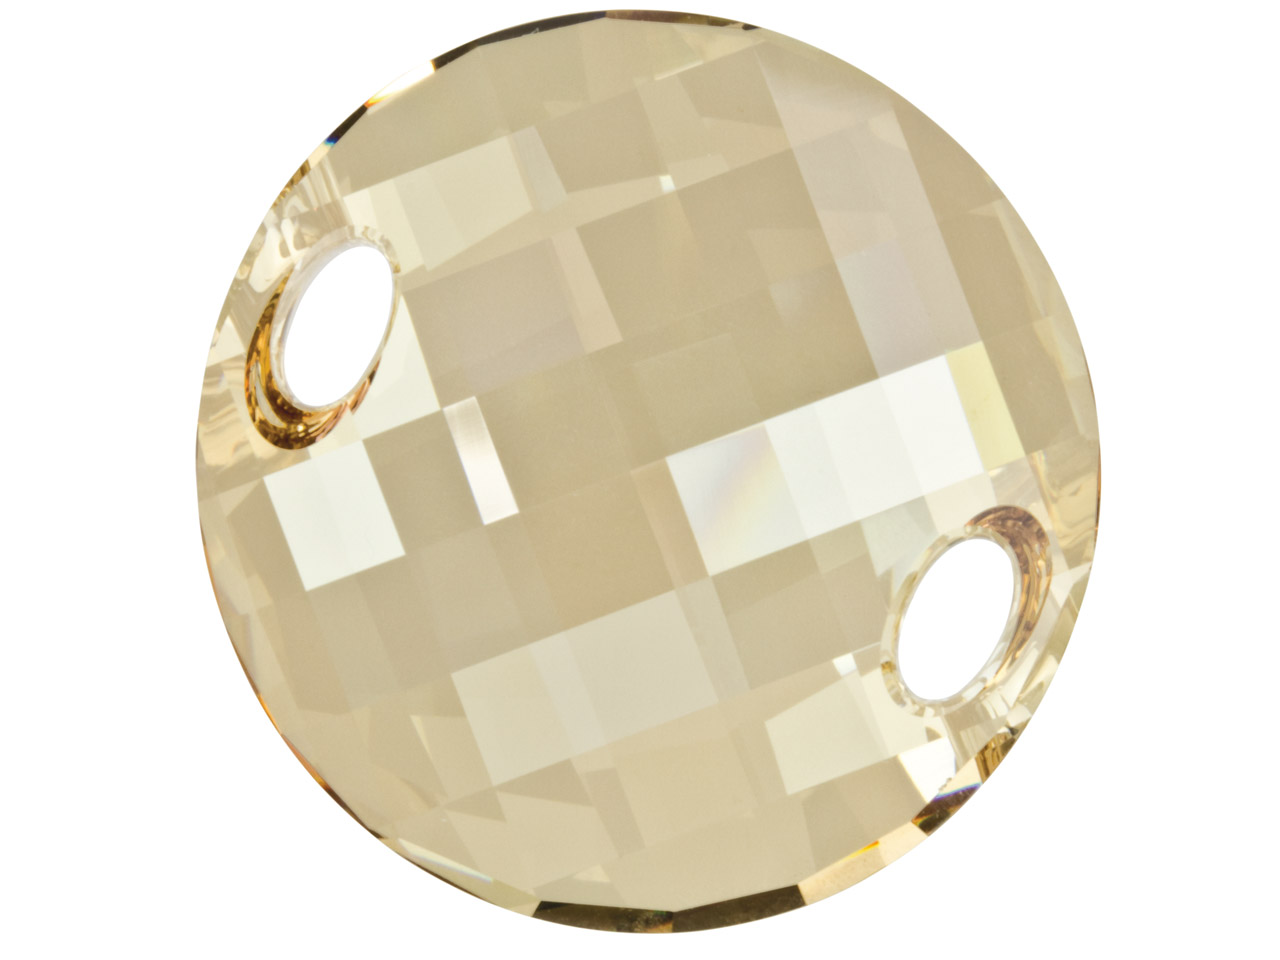 Swarovski Crystal Twisted Sew-on   Bead, 3221, 28mm Crystal Golden    Shadow